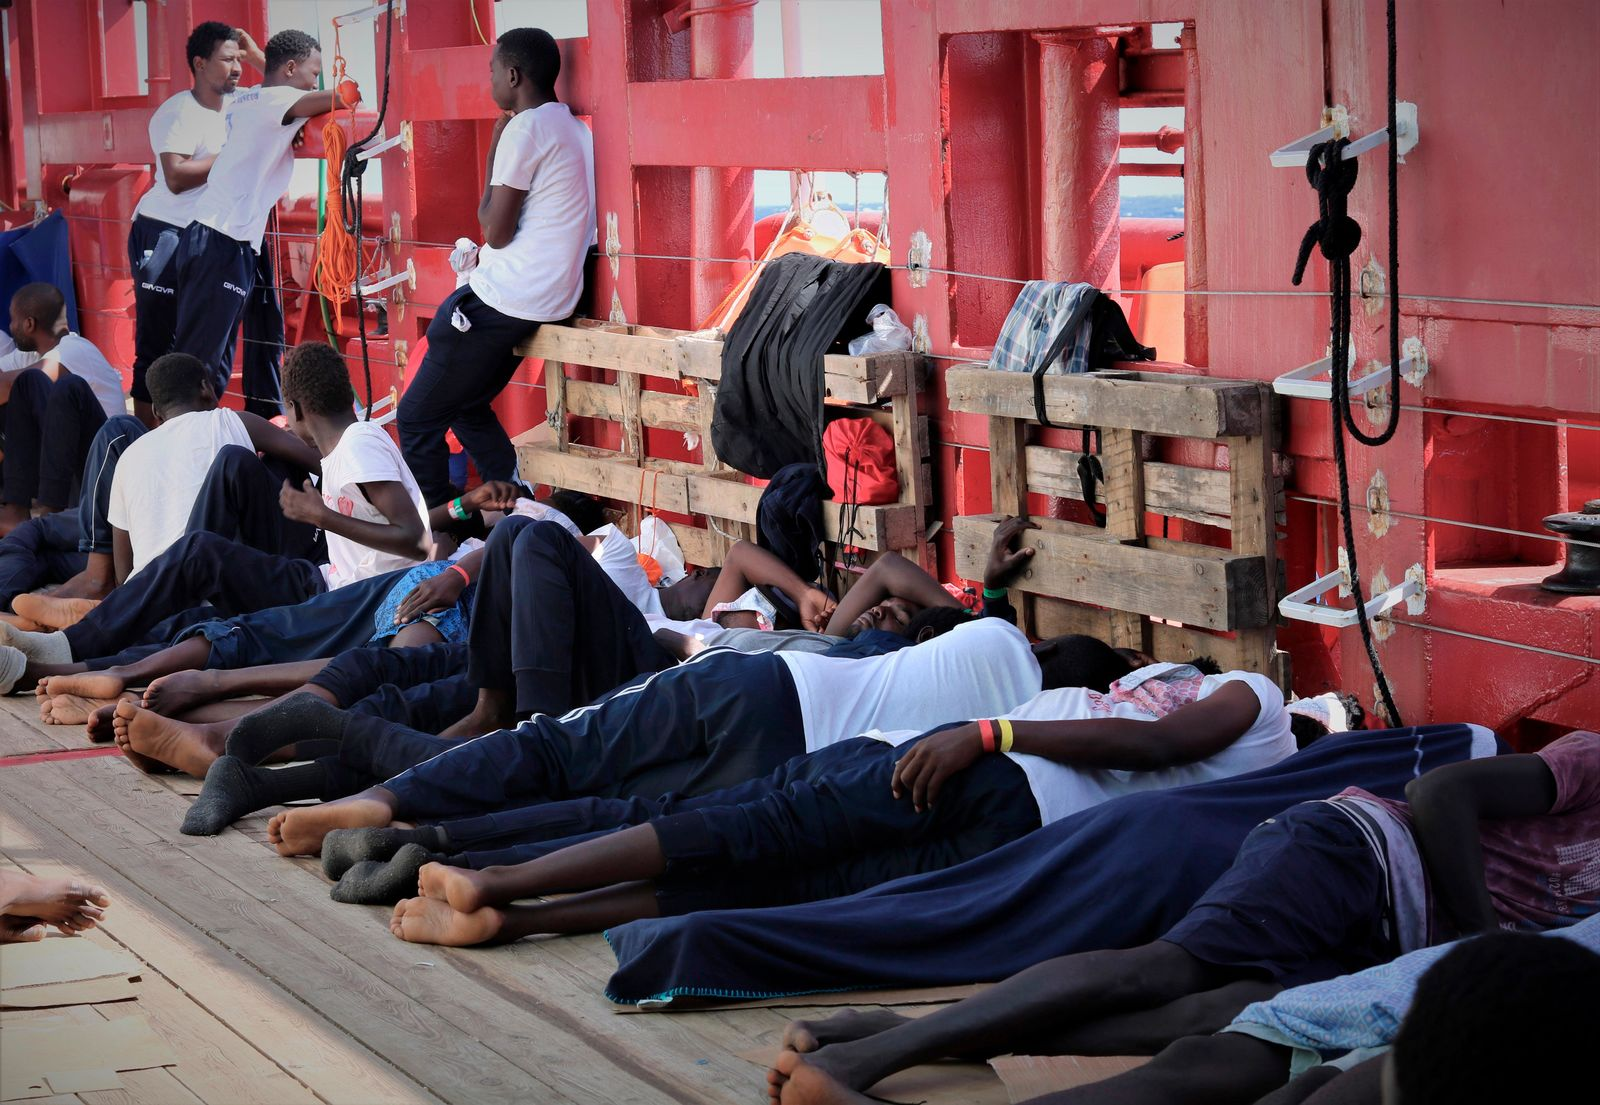 In this Aug. 13, 2019 photo made available Monday, Aug. 19, 2019, rescued migrants rest on the deck of the Norwegian-flagged Ocean Viking vessel, operated by two French humanitarian groups, as it sails in the waters between the Italian island of Linosa, southern Italy, and Malta.{ } (Hannah Wallace Bowman/MSF via AP)